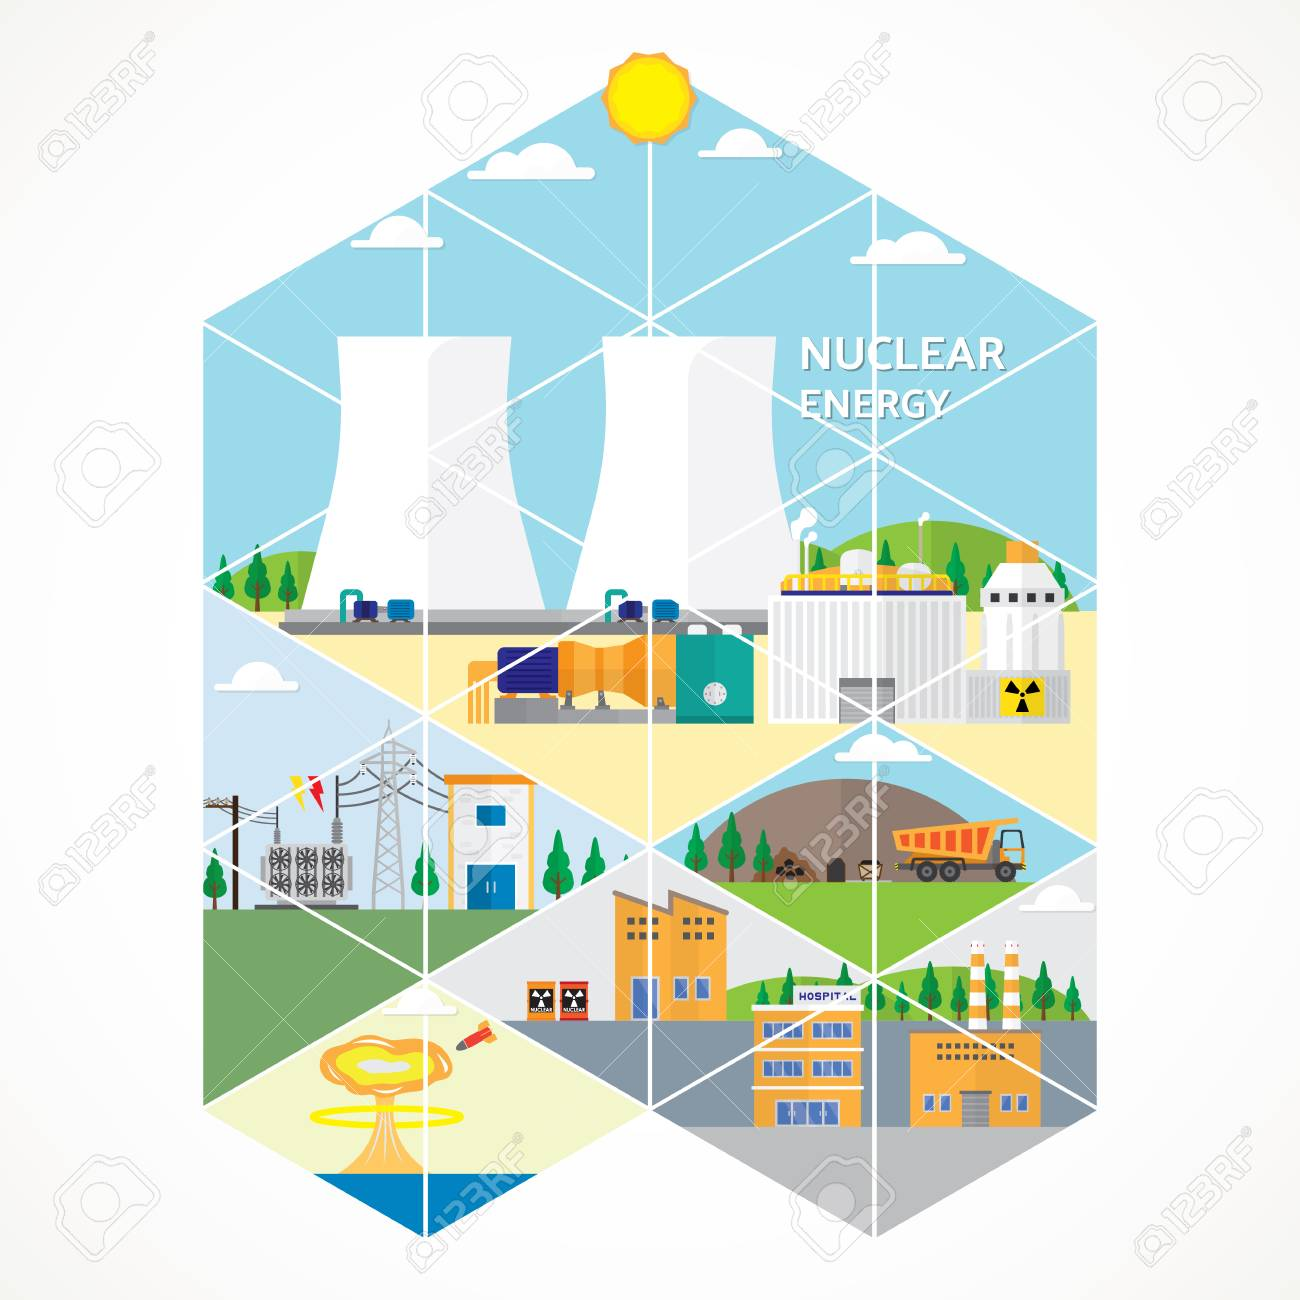 Nuclear Energy Power Plant Diagram Electrical Wiring Diagrams Ppt Royalty Free Cliparts Vectors Fossil Fuel